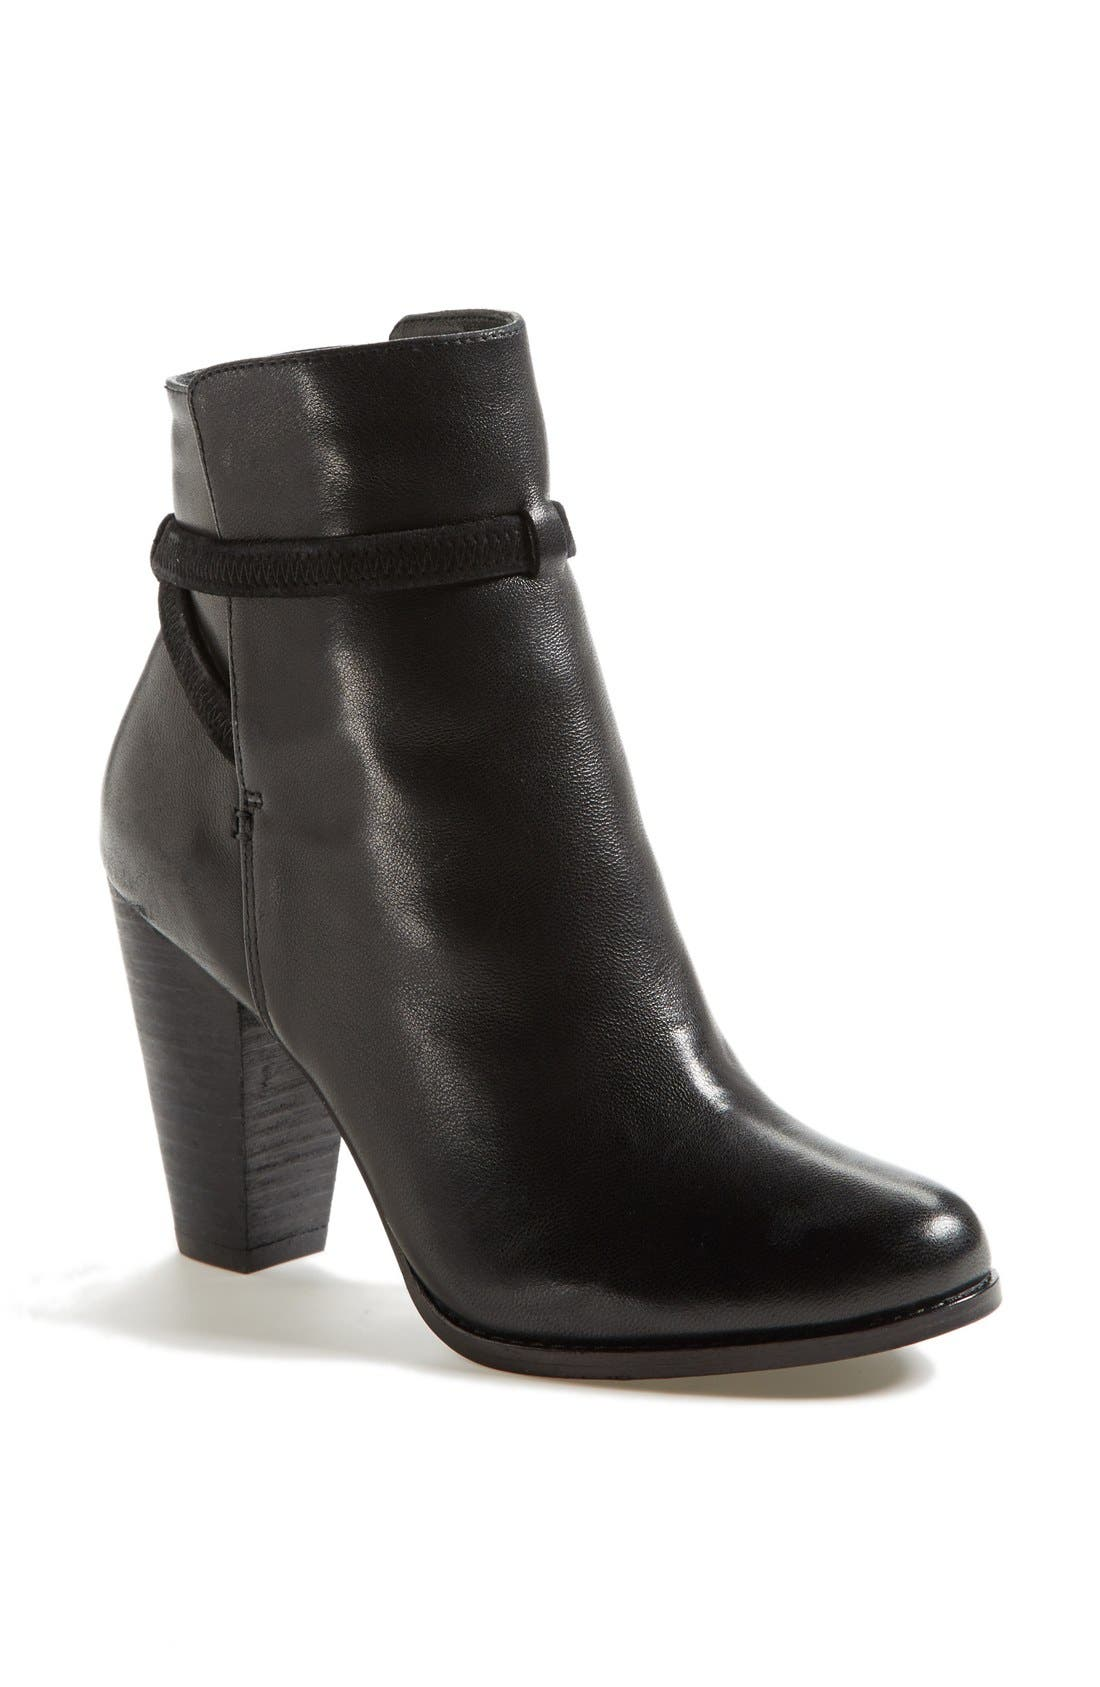 Main Image - Joie 'Rigby' Bootie (Women)